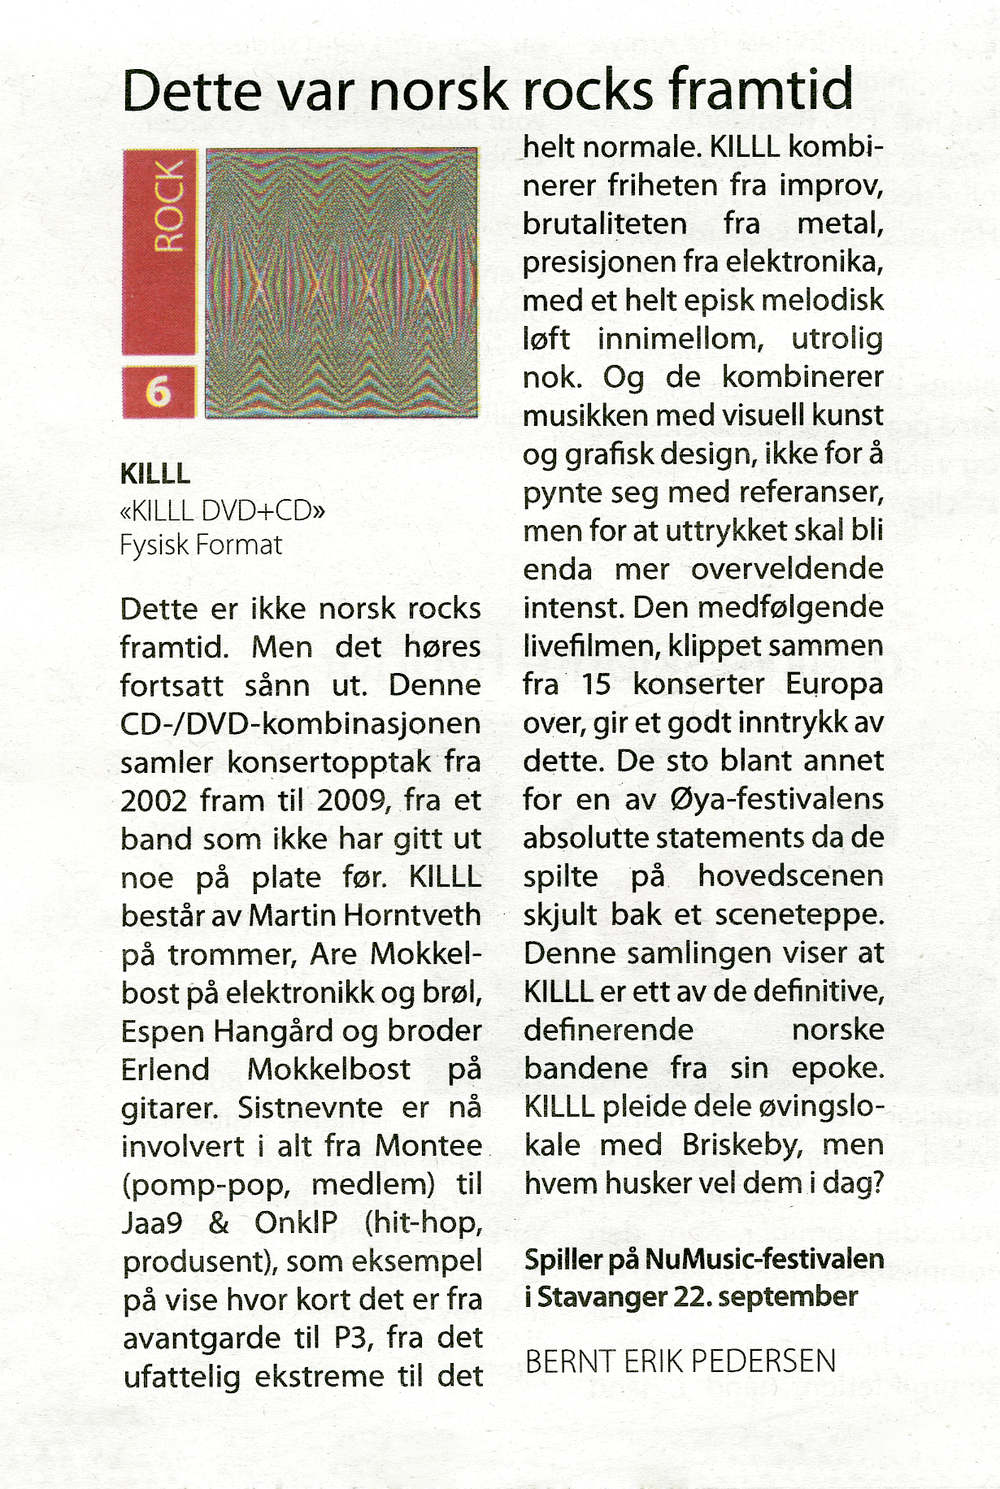 Review in Norwegian, from Dagsavisen, 2011.